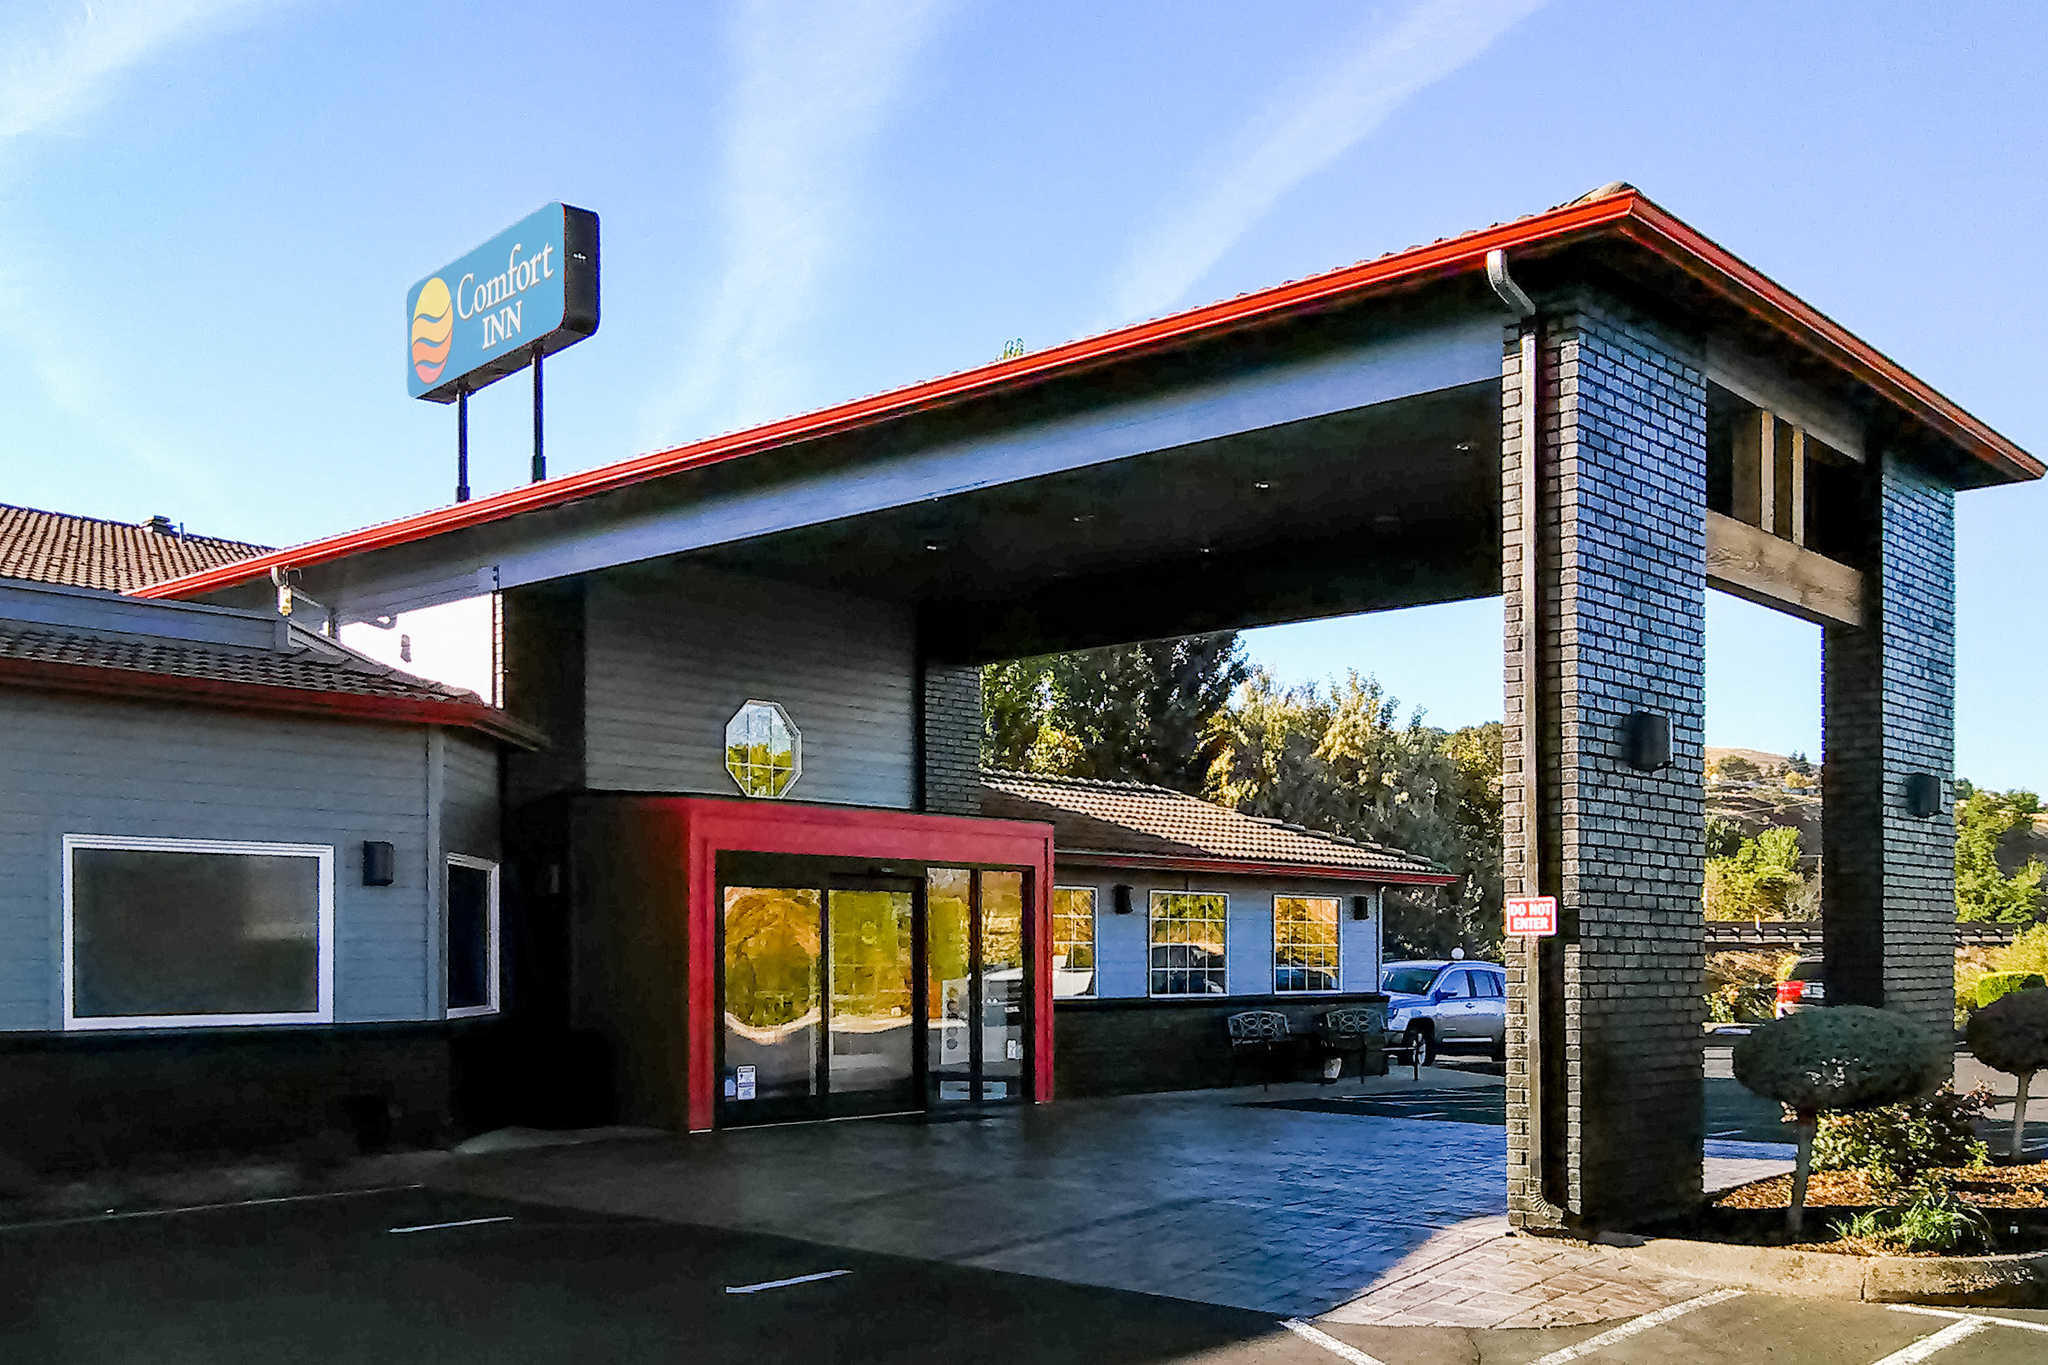 Comfort inn columbia gorge in the dalles or 97058 for Hood river swimming pool hours